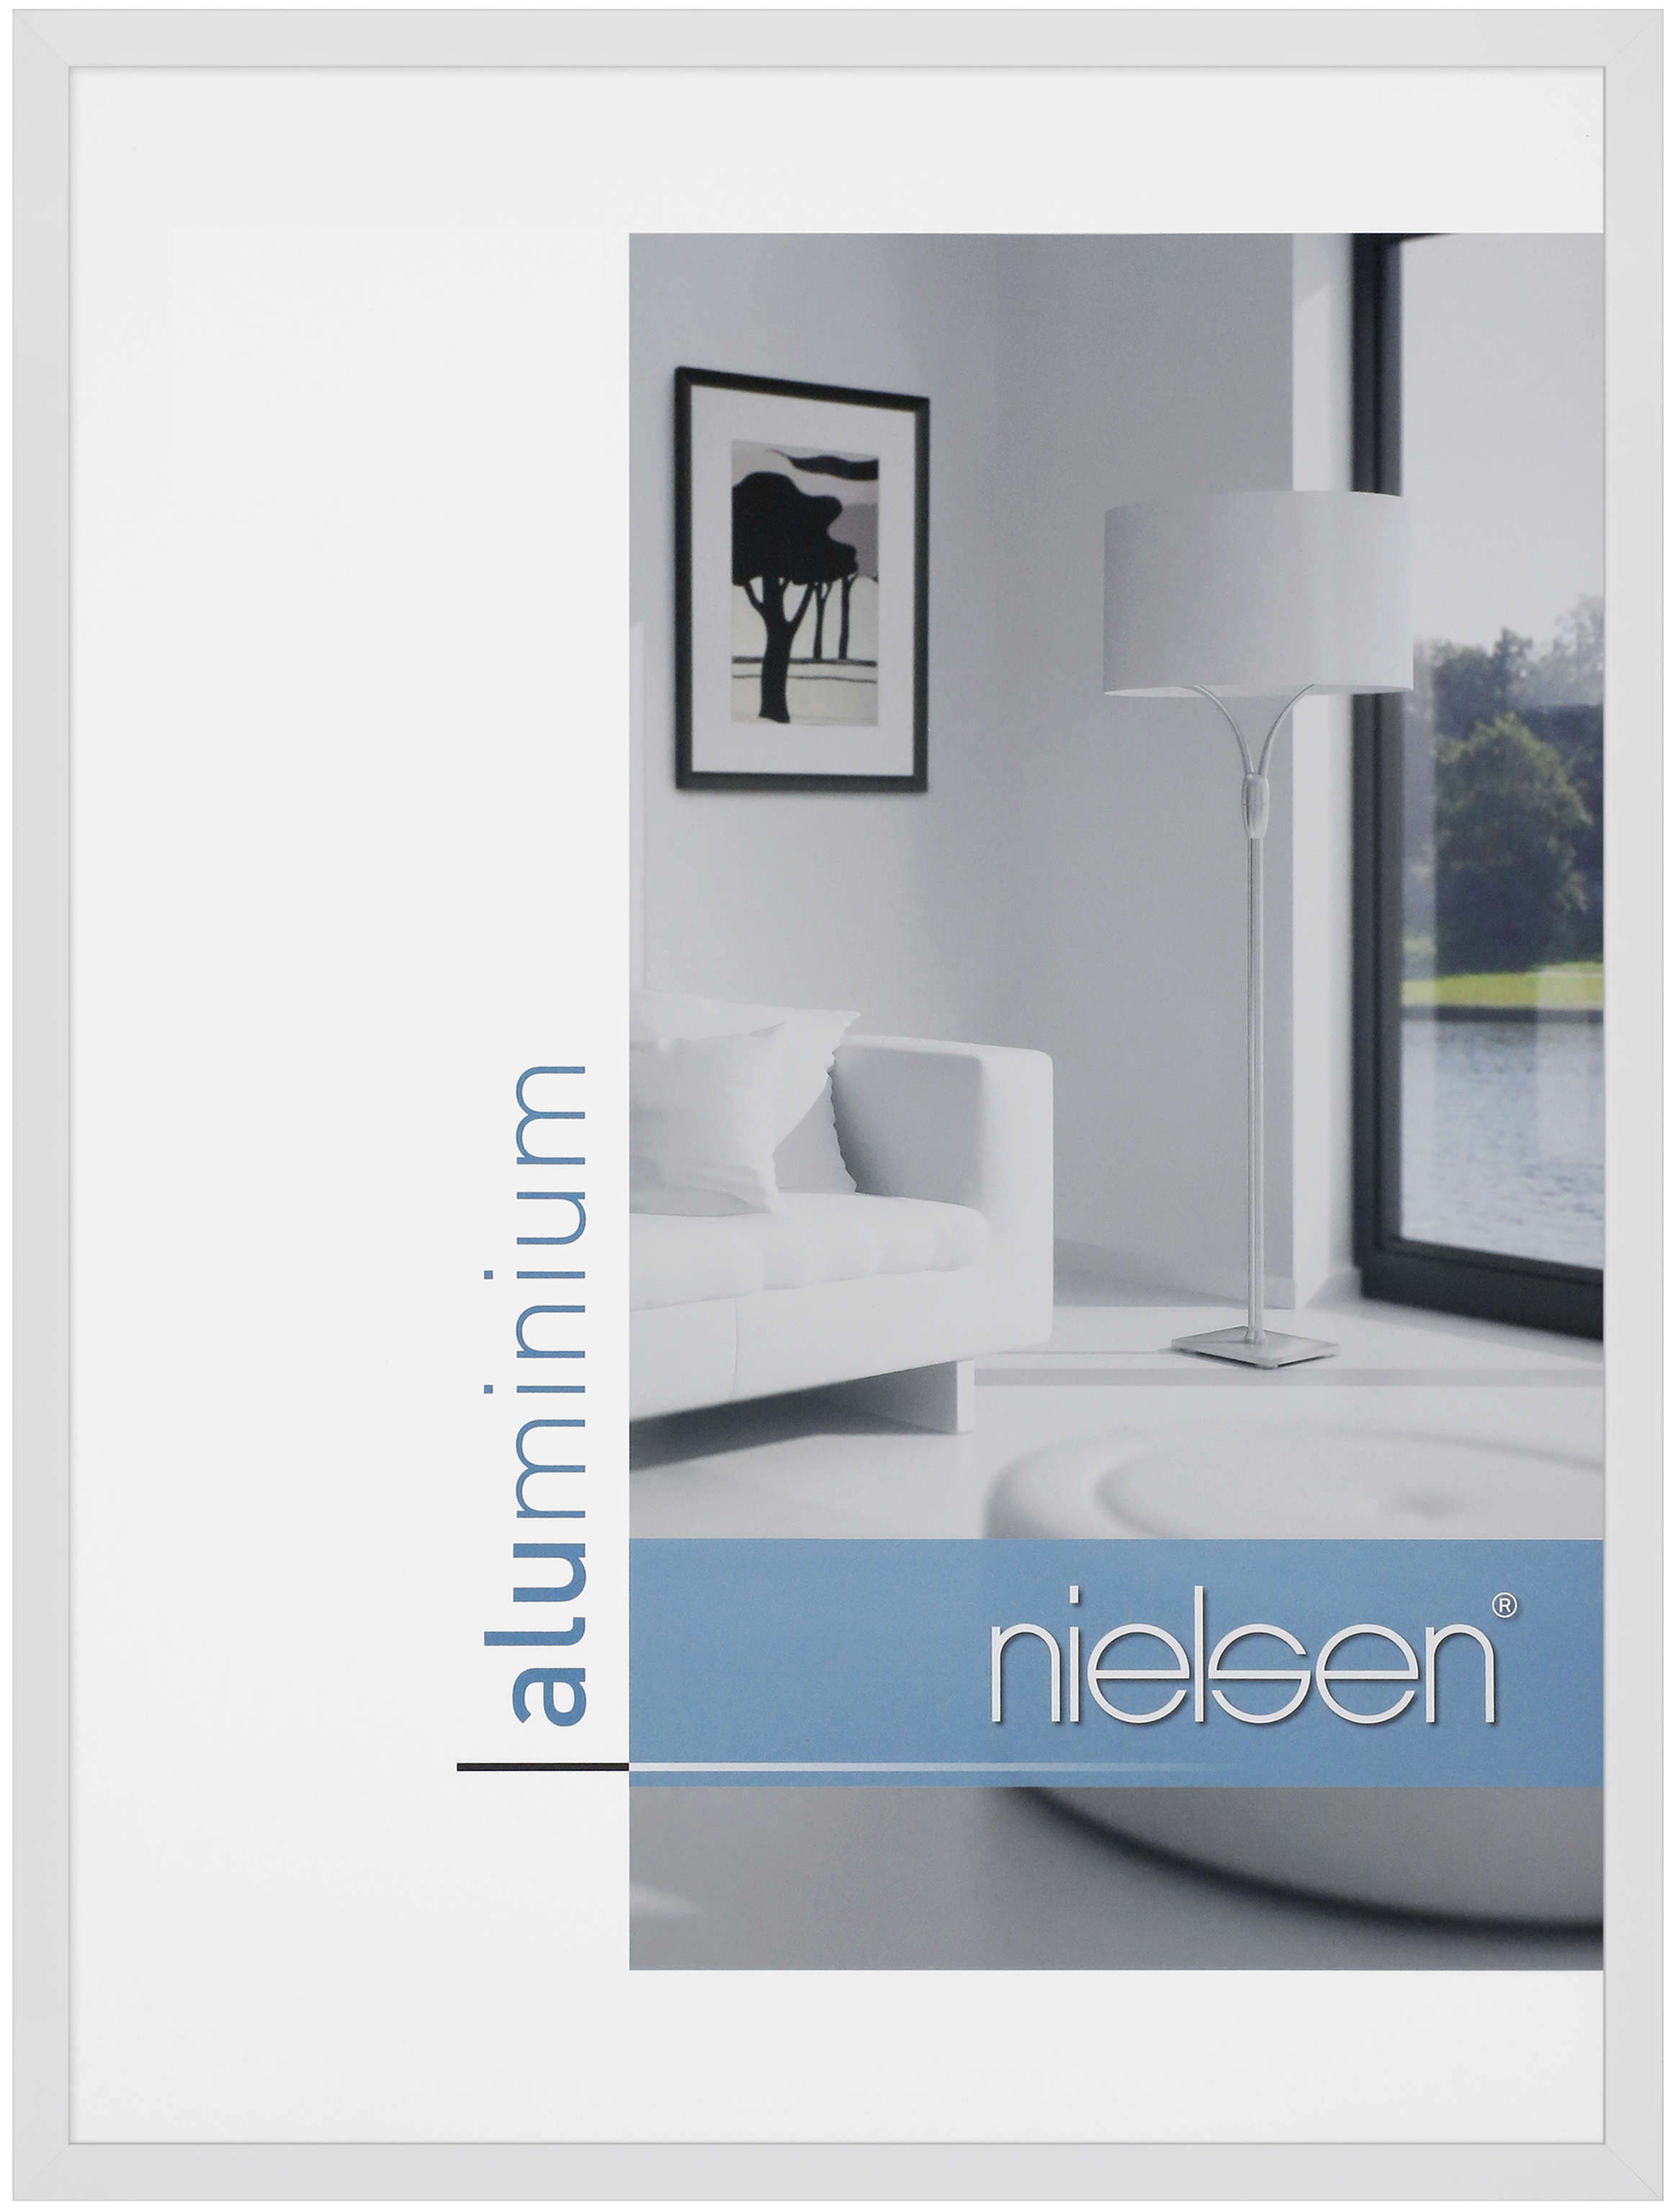 nielsen c2 aluminium rahmen bilderrahmen alurahmen. Black Bedroom Furniture Sets. Home Design Ideas